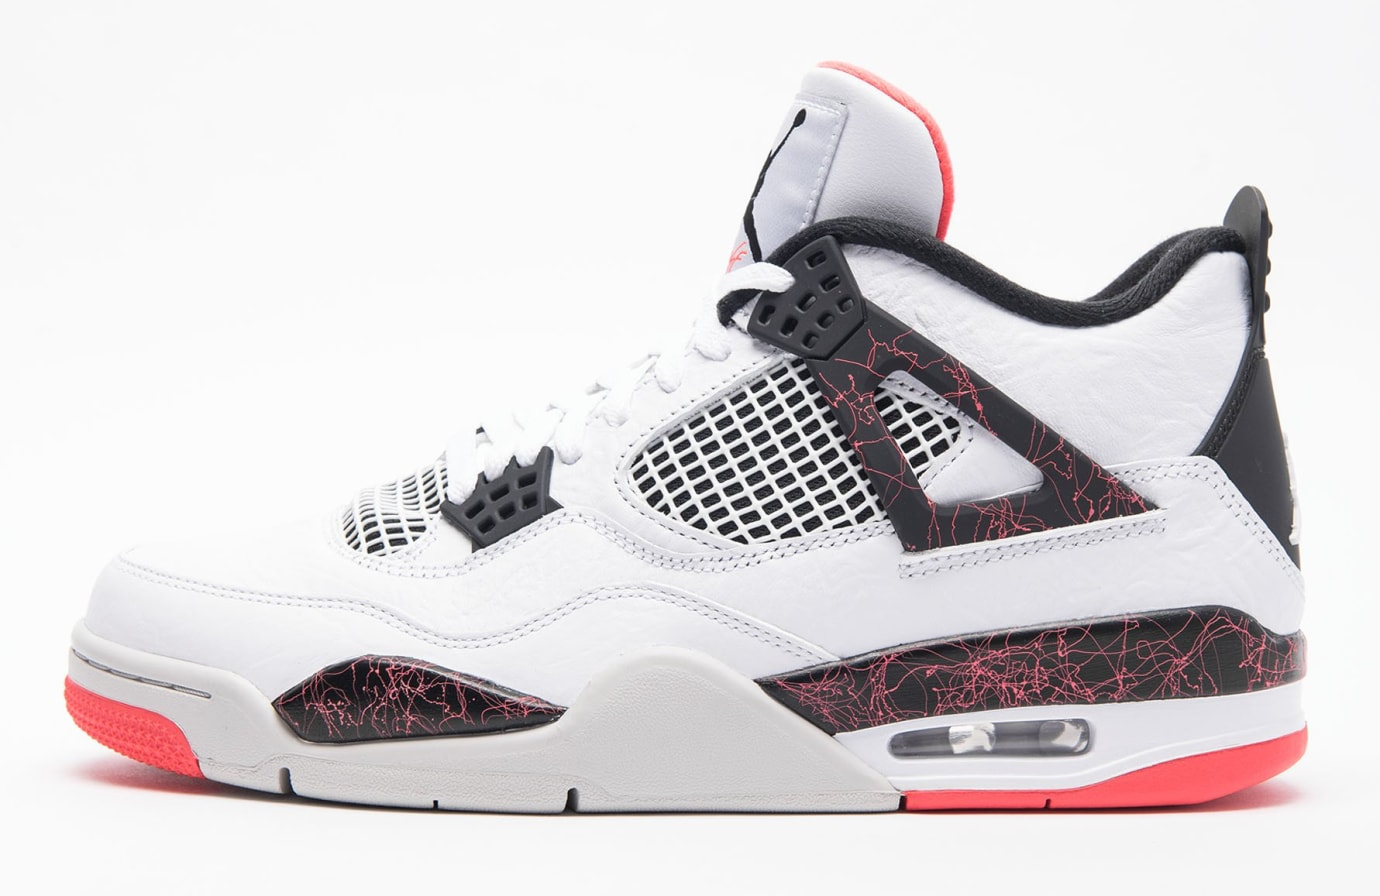 new product 5dbc9 0ba7c Air Jordan 4 Retro 'White/Black-Light Crimson-Pale Citron ...